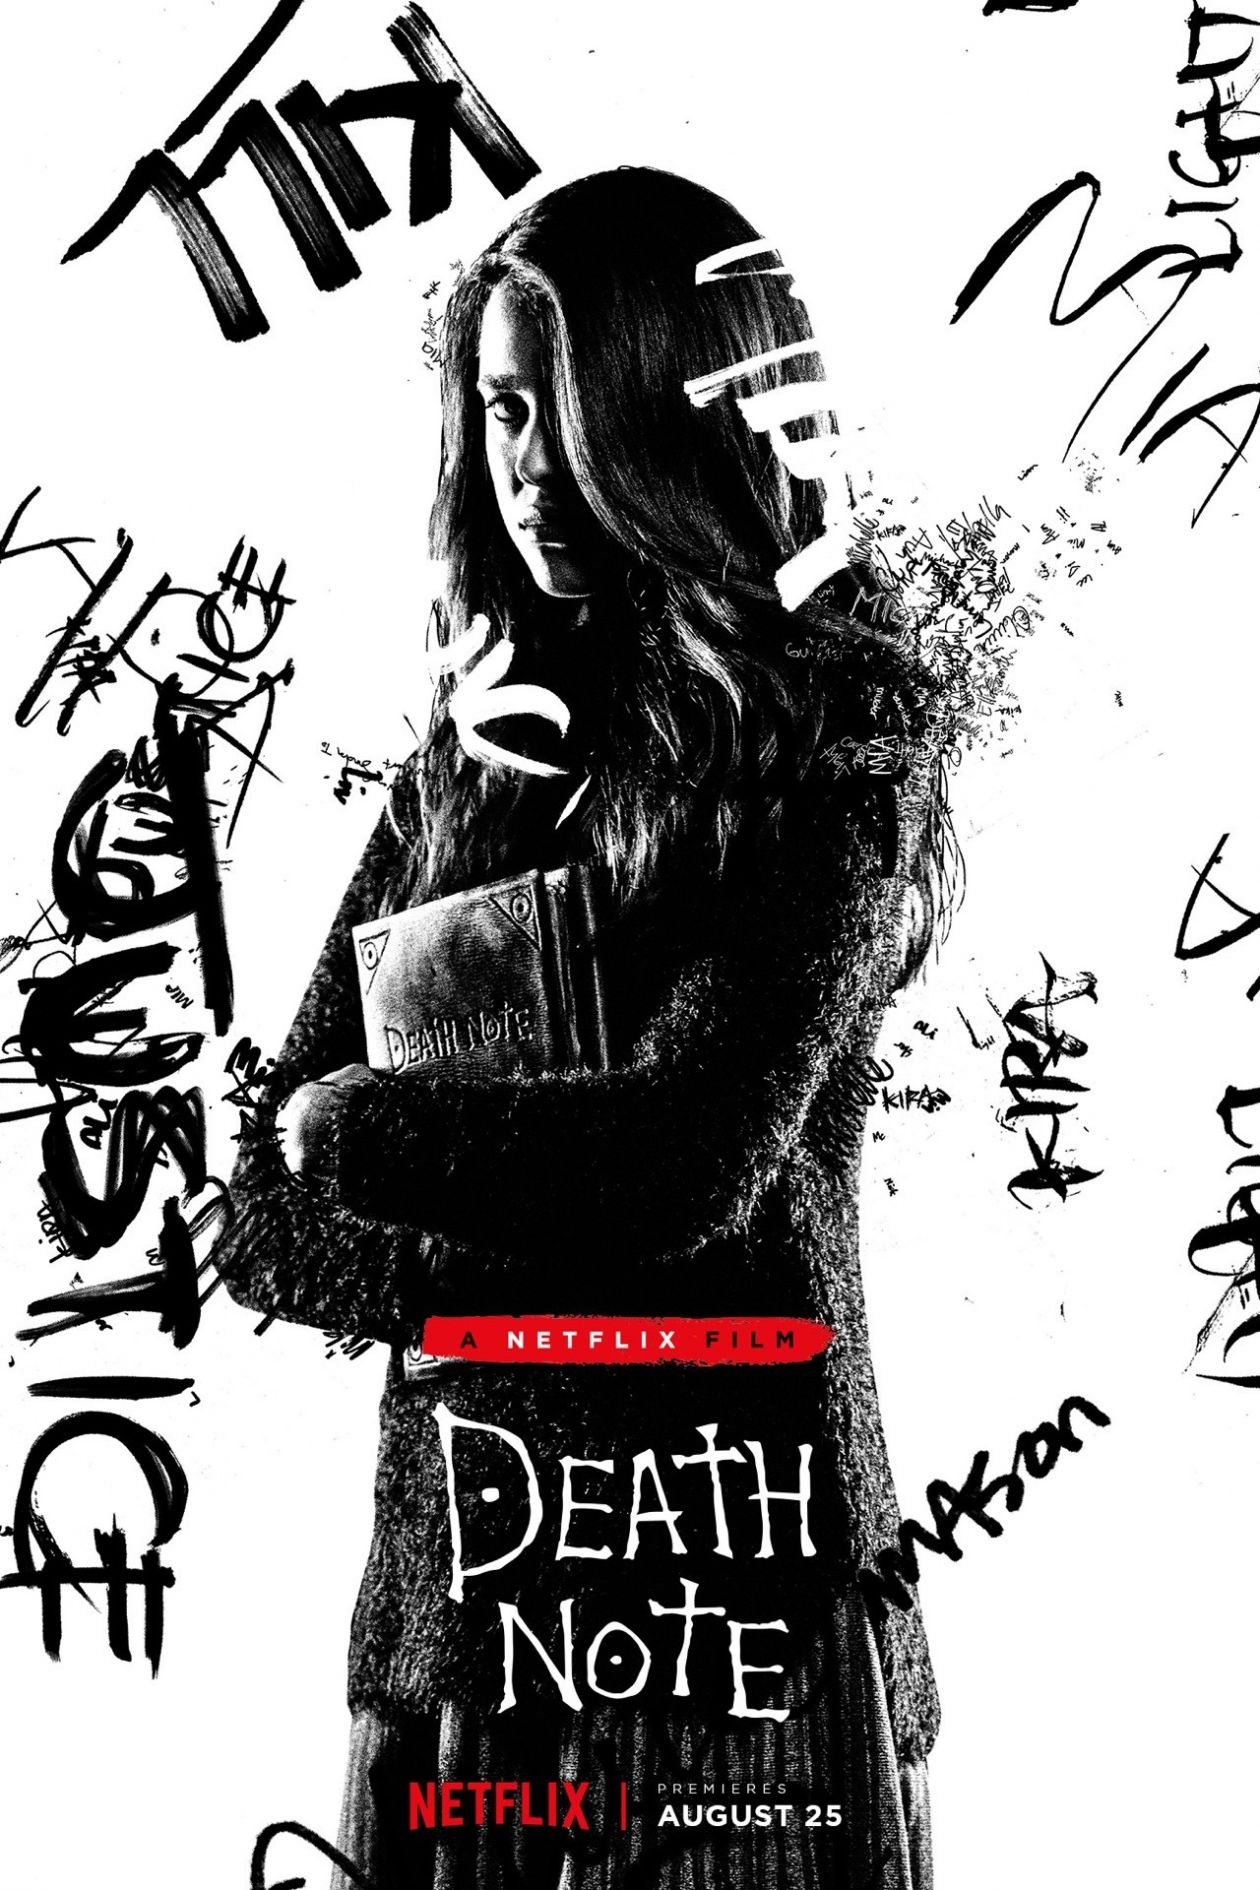 Margaret Qualley actress | Death Note / Netflix 2017 Movie Poster / Affiche film